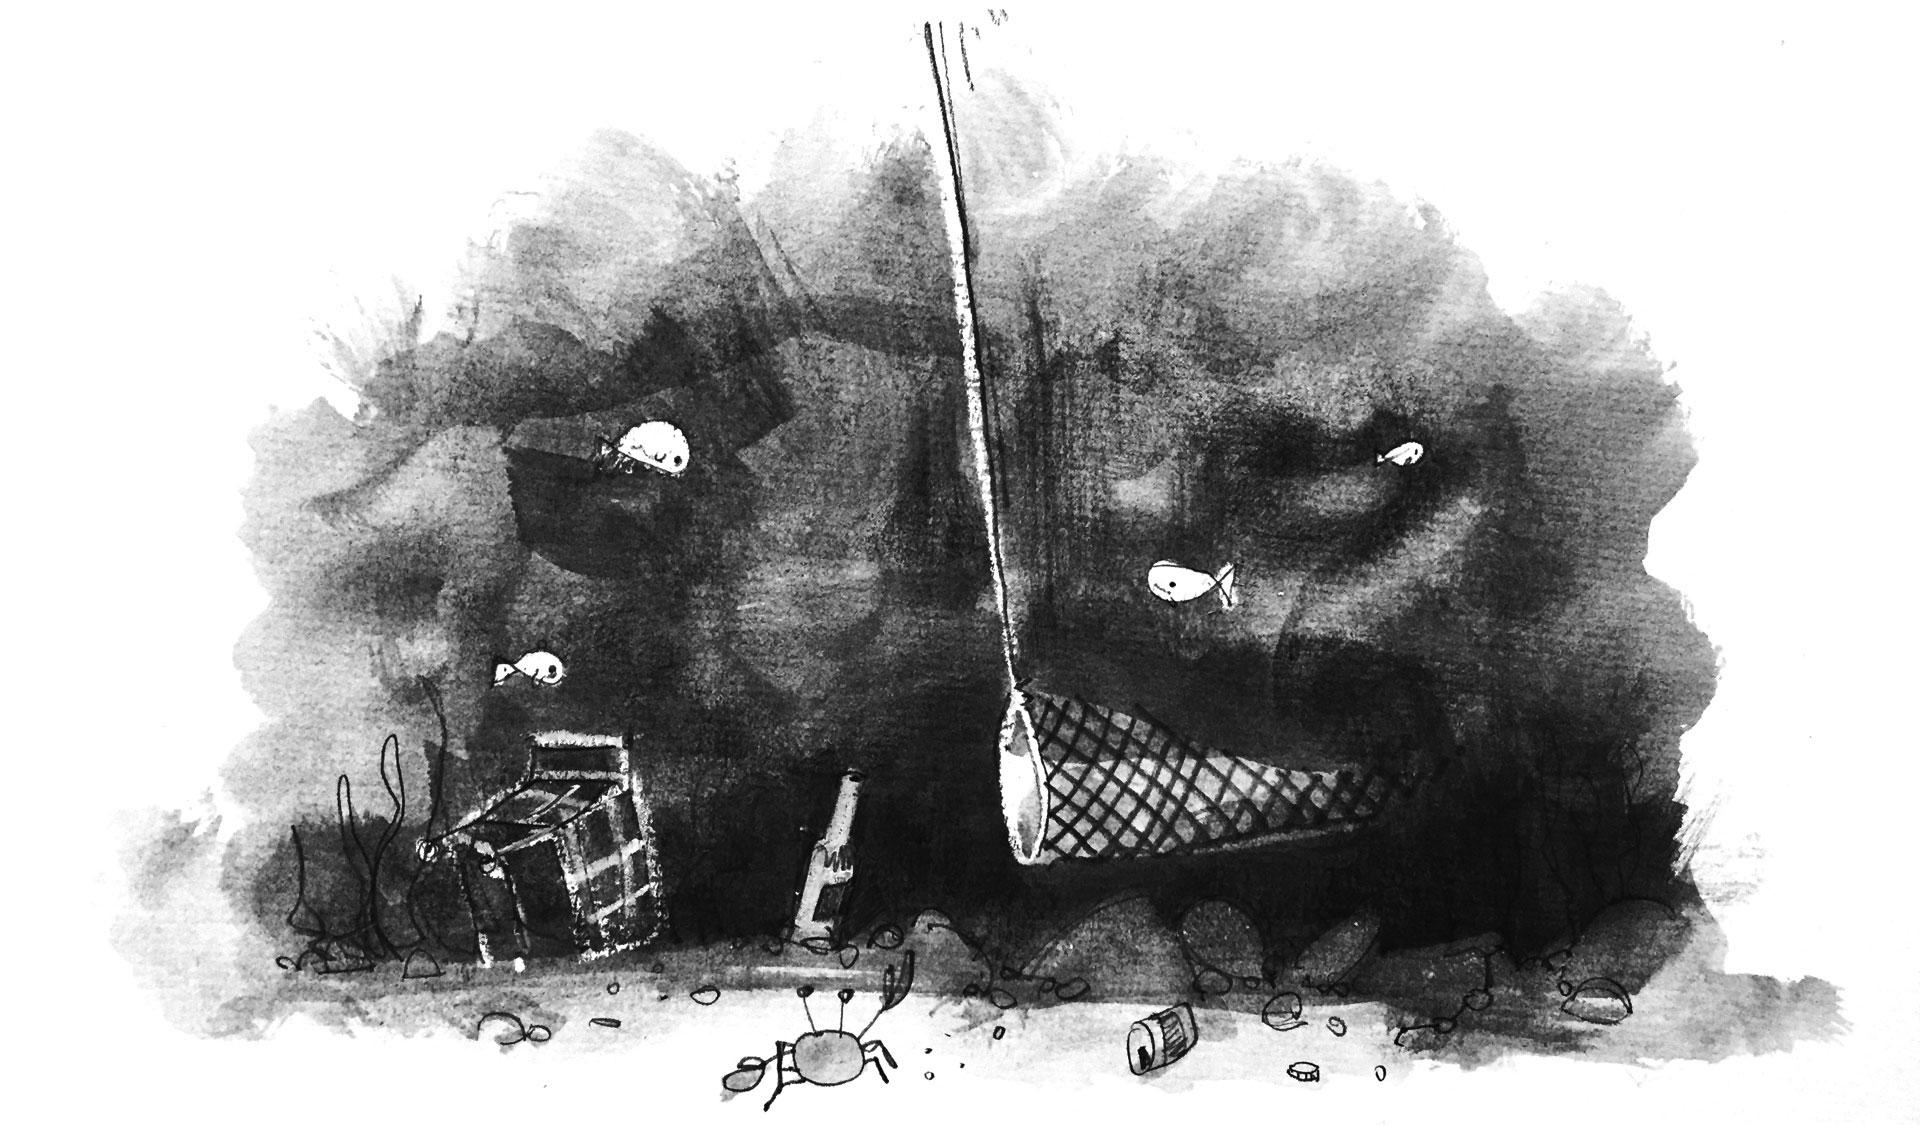 Illustration: A net skims the sea floor trawling for only the tastiest treats. Trash lurks all around it, threatening to snag on it.